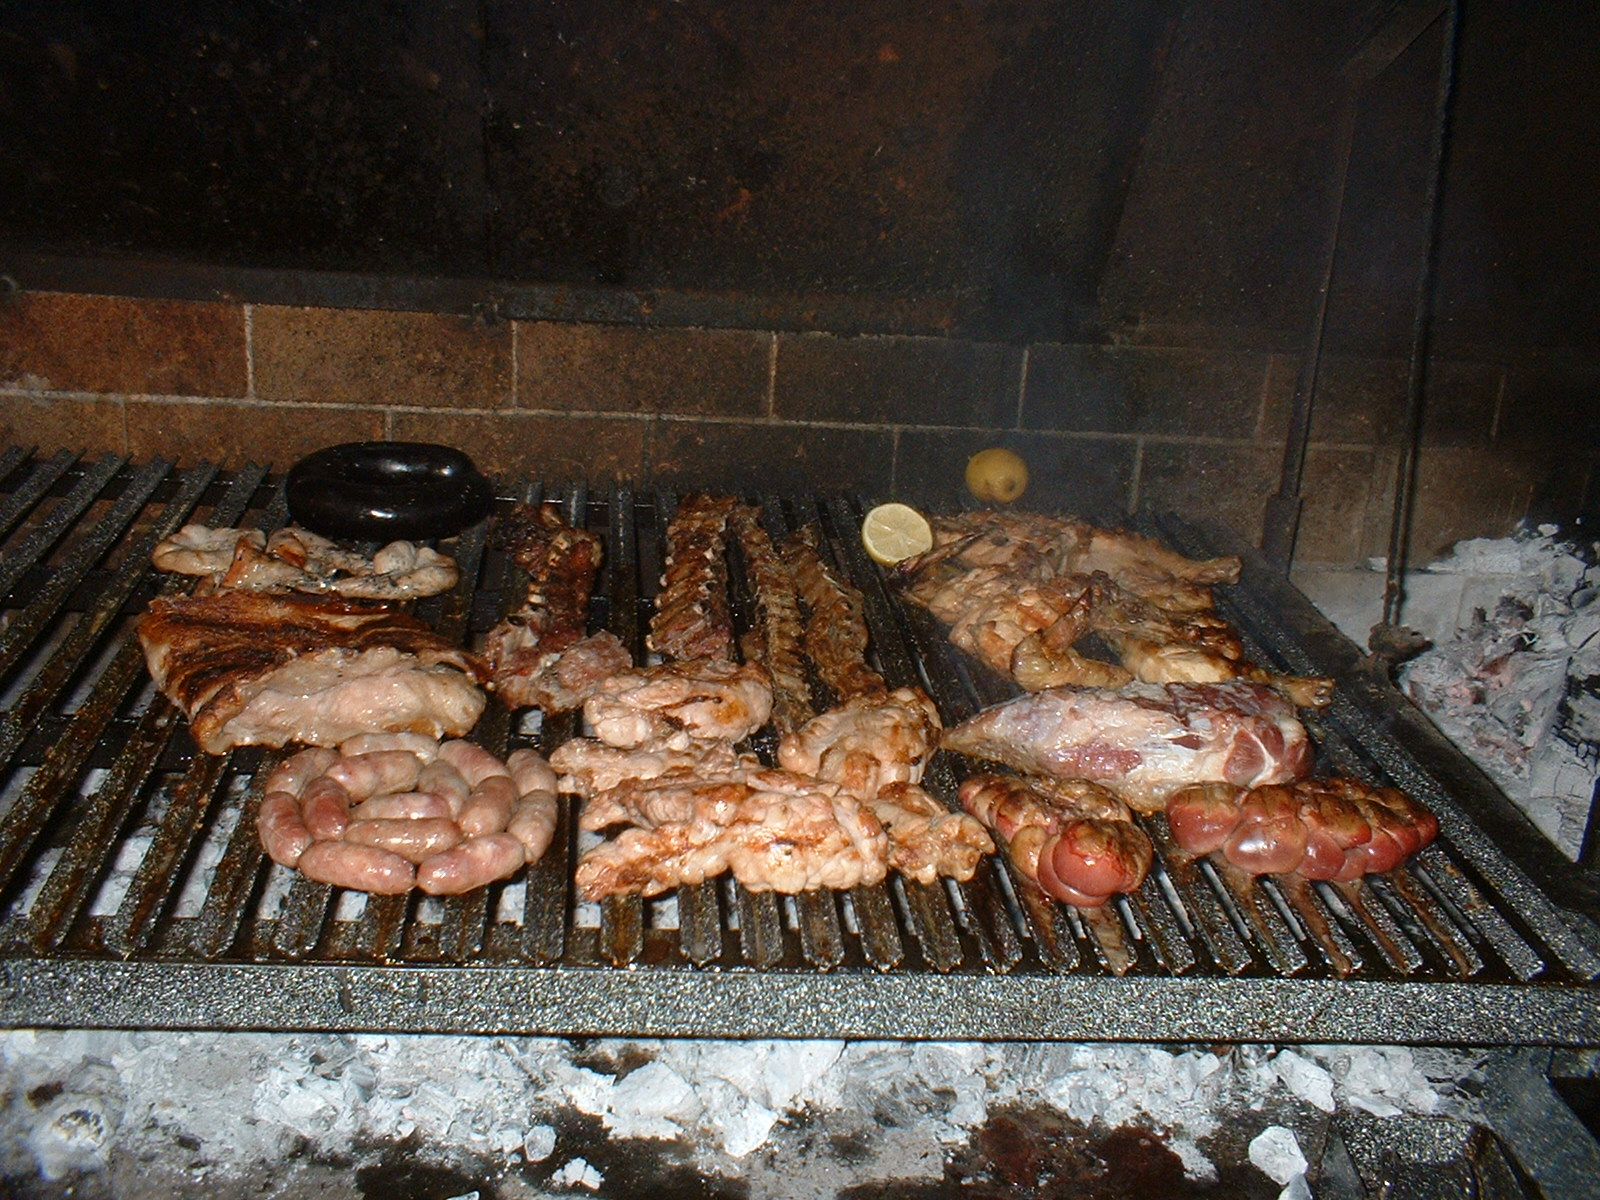 PINTOR Y PATAGONIA (PUBLICIDAD)-http://upload.wikimedia.org/wikipedia/commons/1/12/Argentinean_asado.jpg